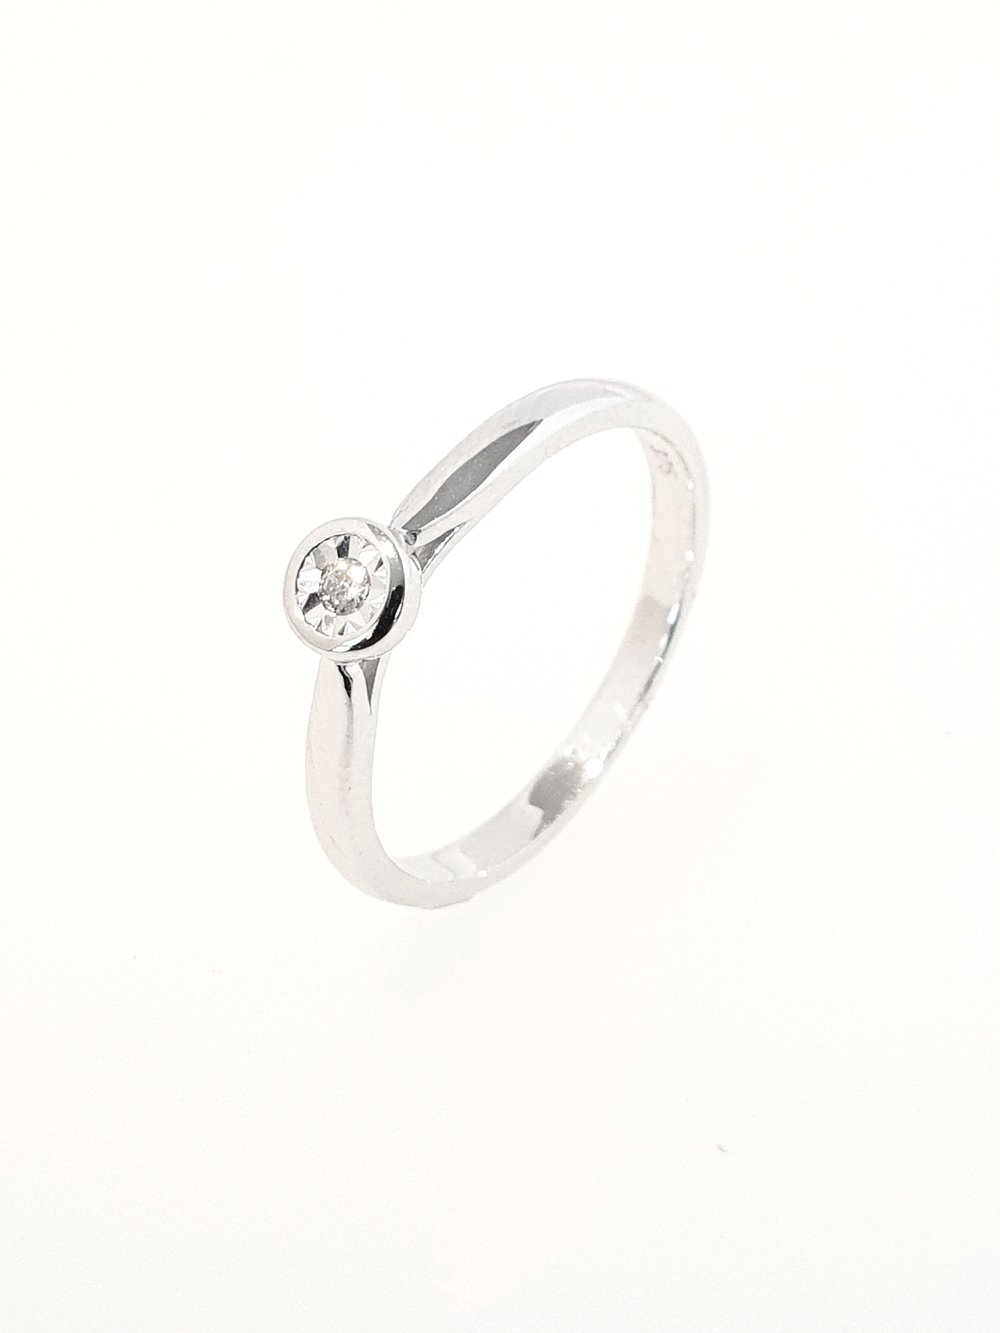 9ct White Gold Diamond Illusion RIng  .04ct  Stock Code: G1959  £300